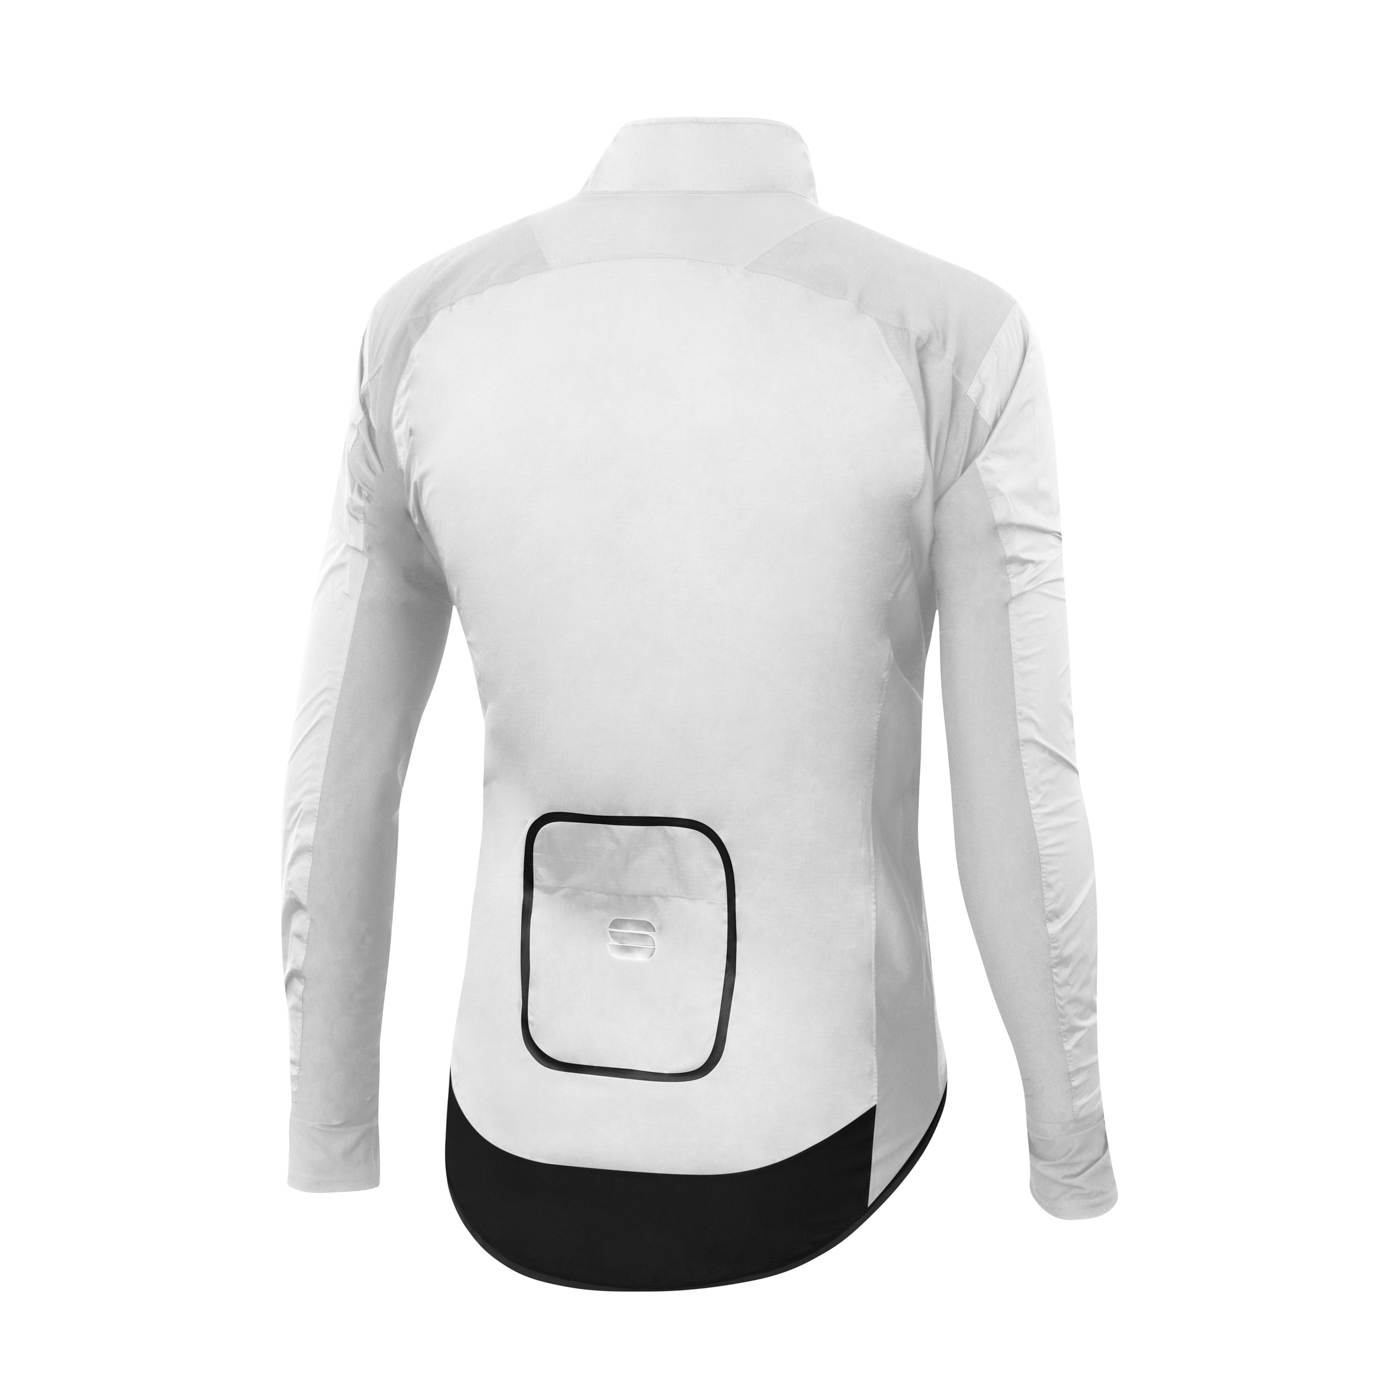 | Sportful Fietsjack Lange mouwen Zeer sterk waterafstotend voor Heren Wit - SF Hot Pack No Rain Jacket-White